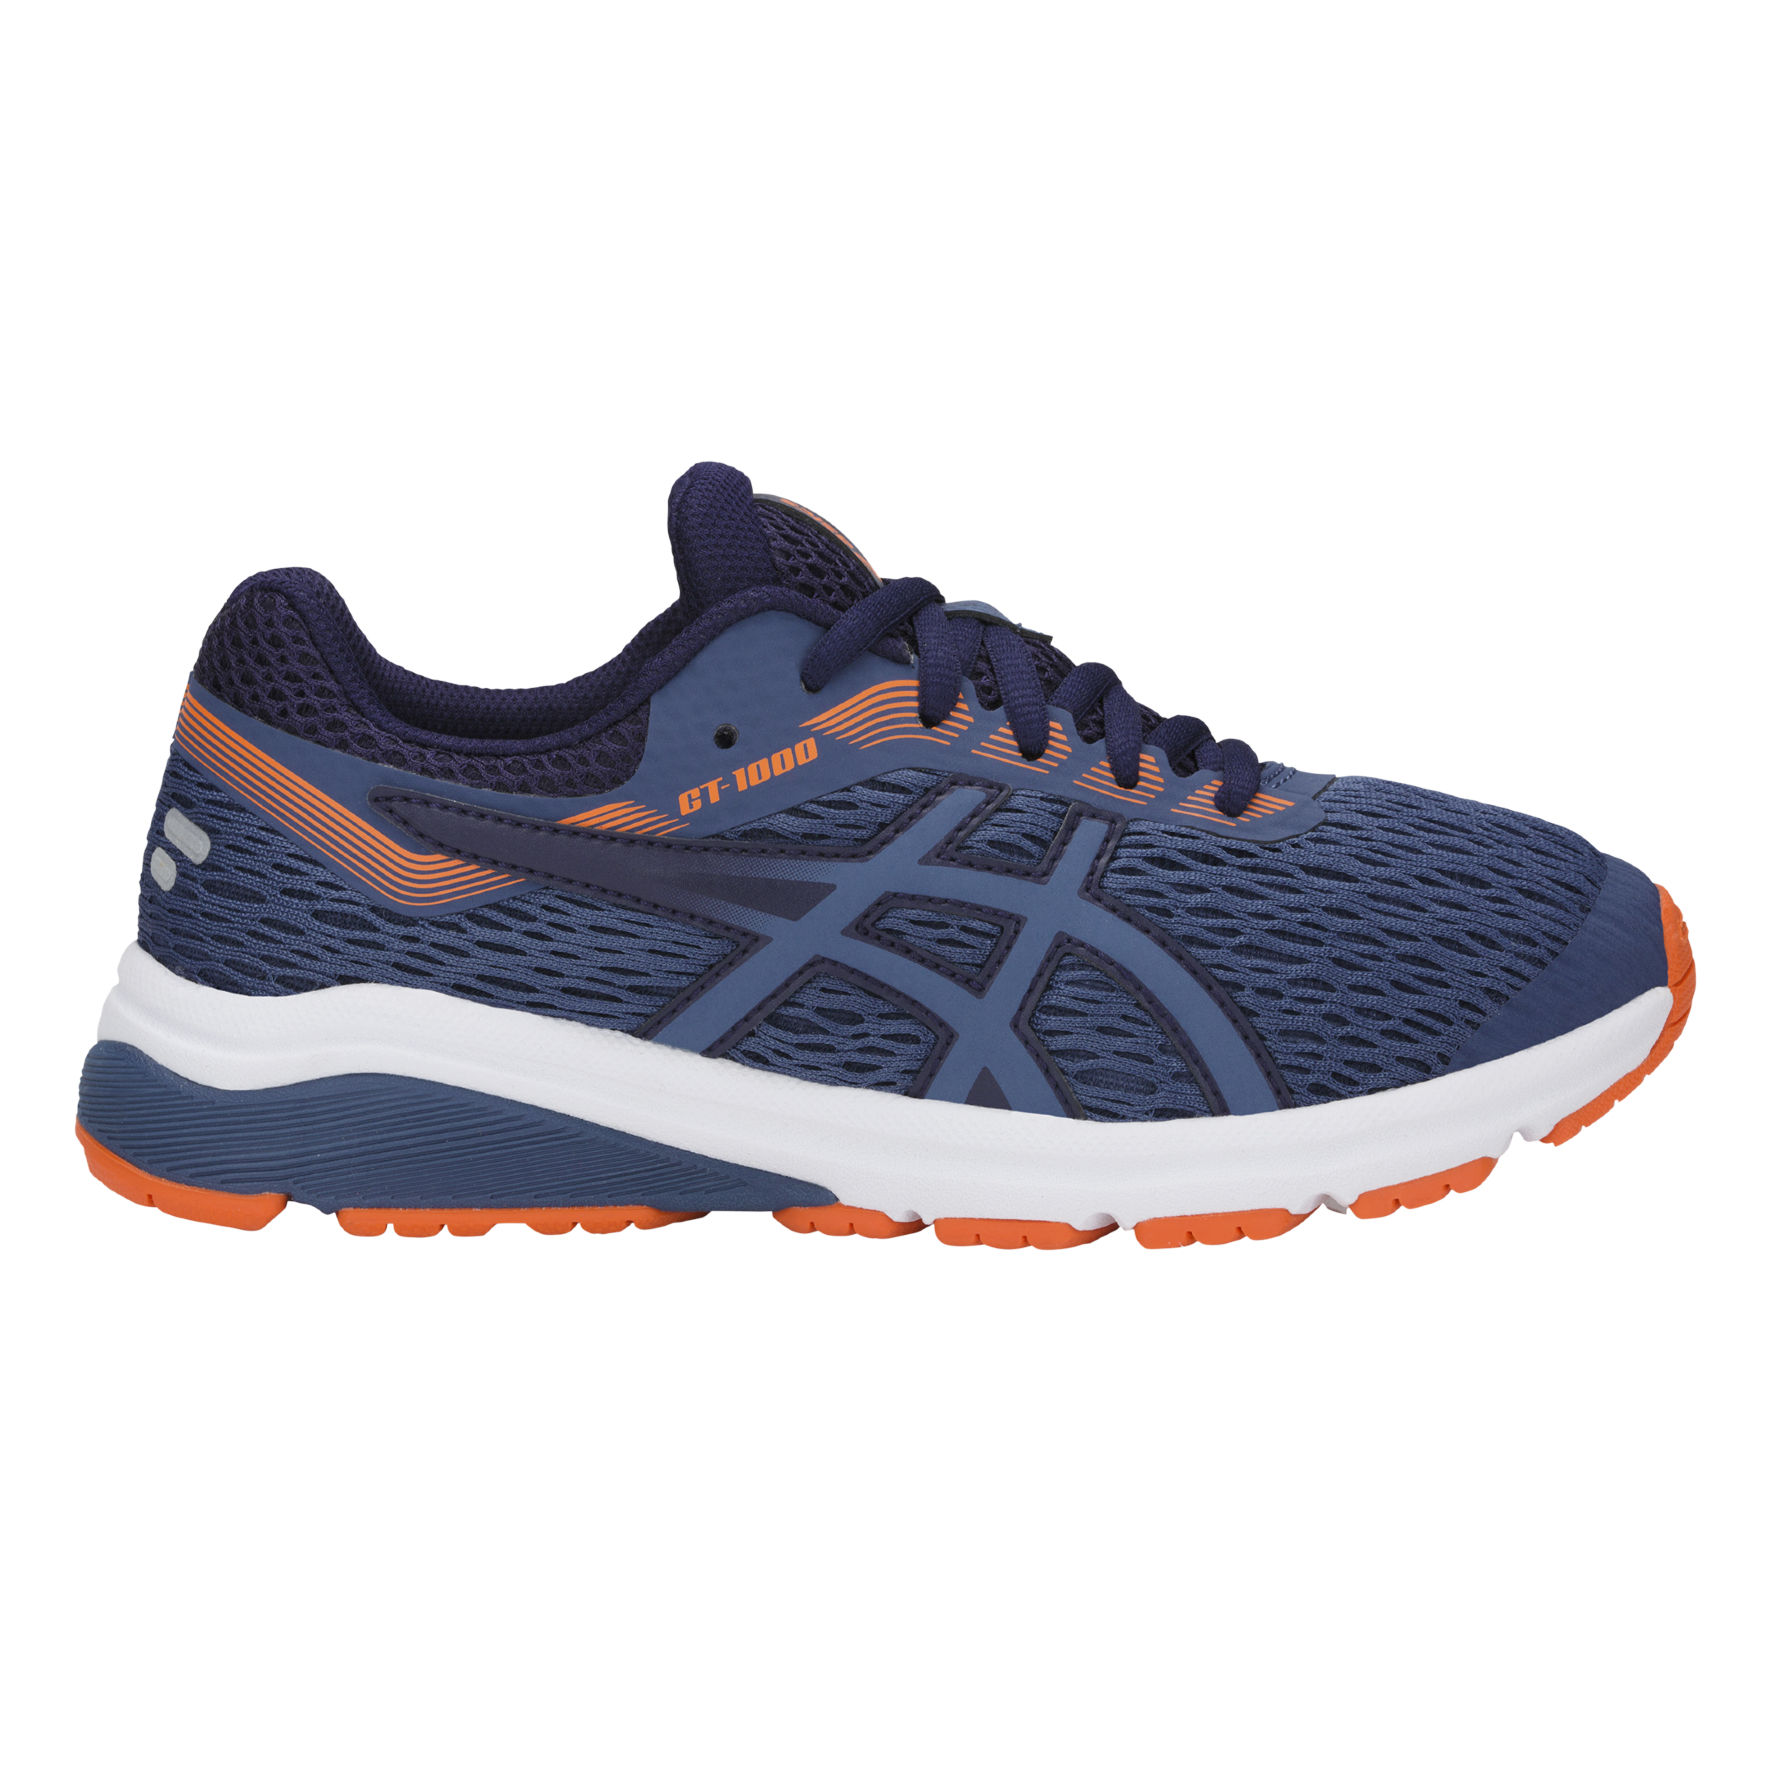 Asics GT-1000 7 GS in Blau Orange